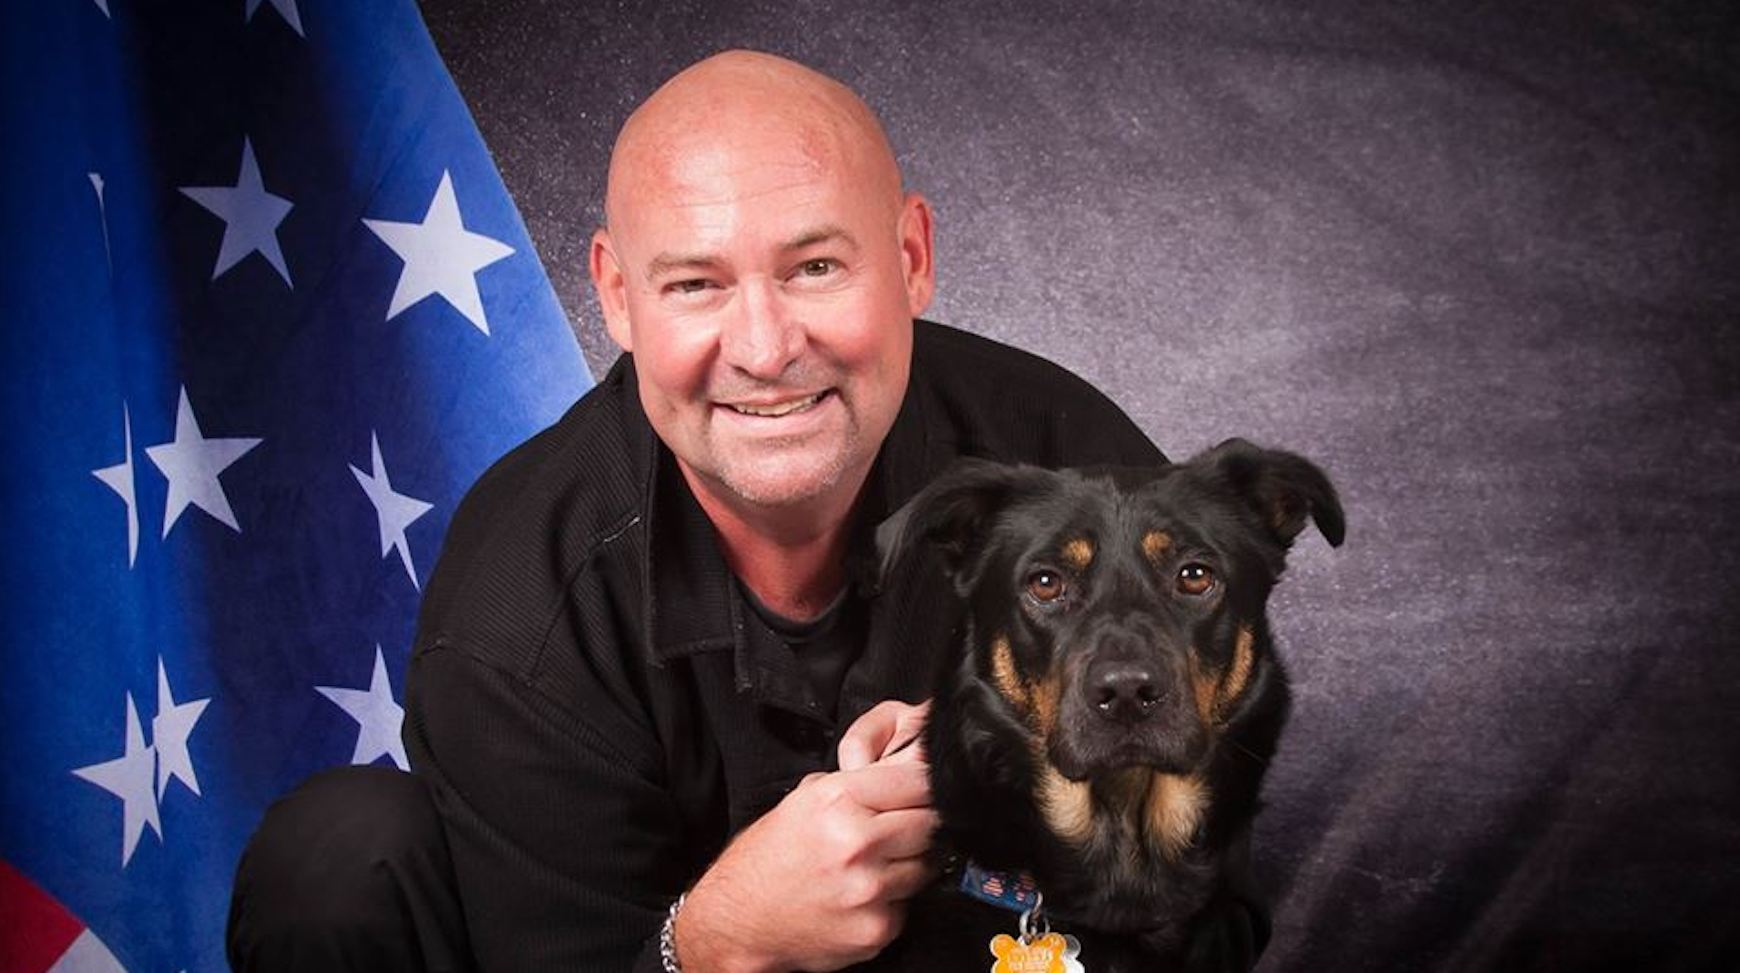 20 veterans commit suicide a day and 1 million dogs are euthanized each year